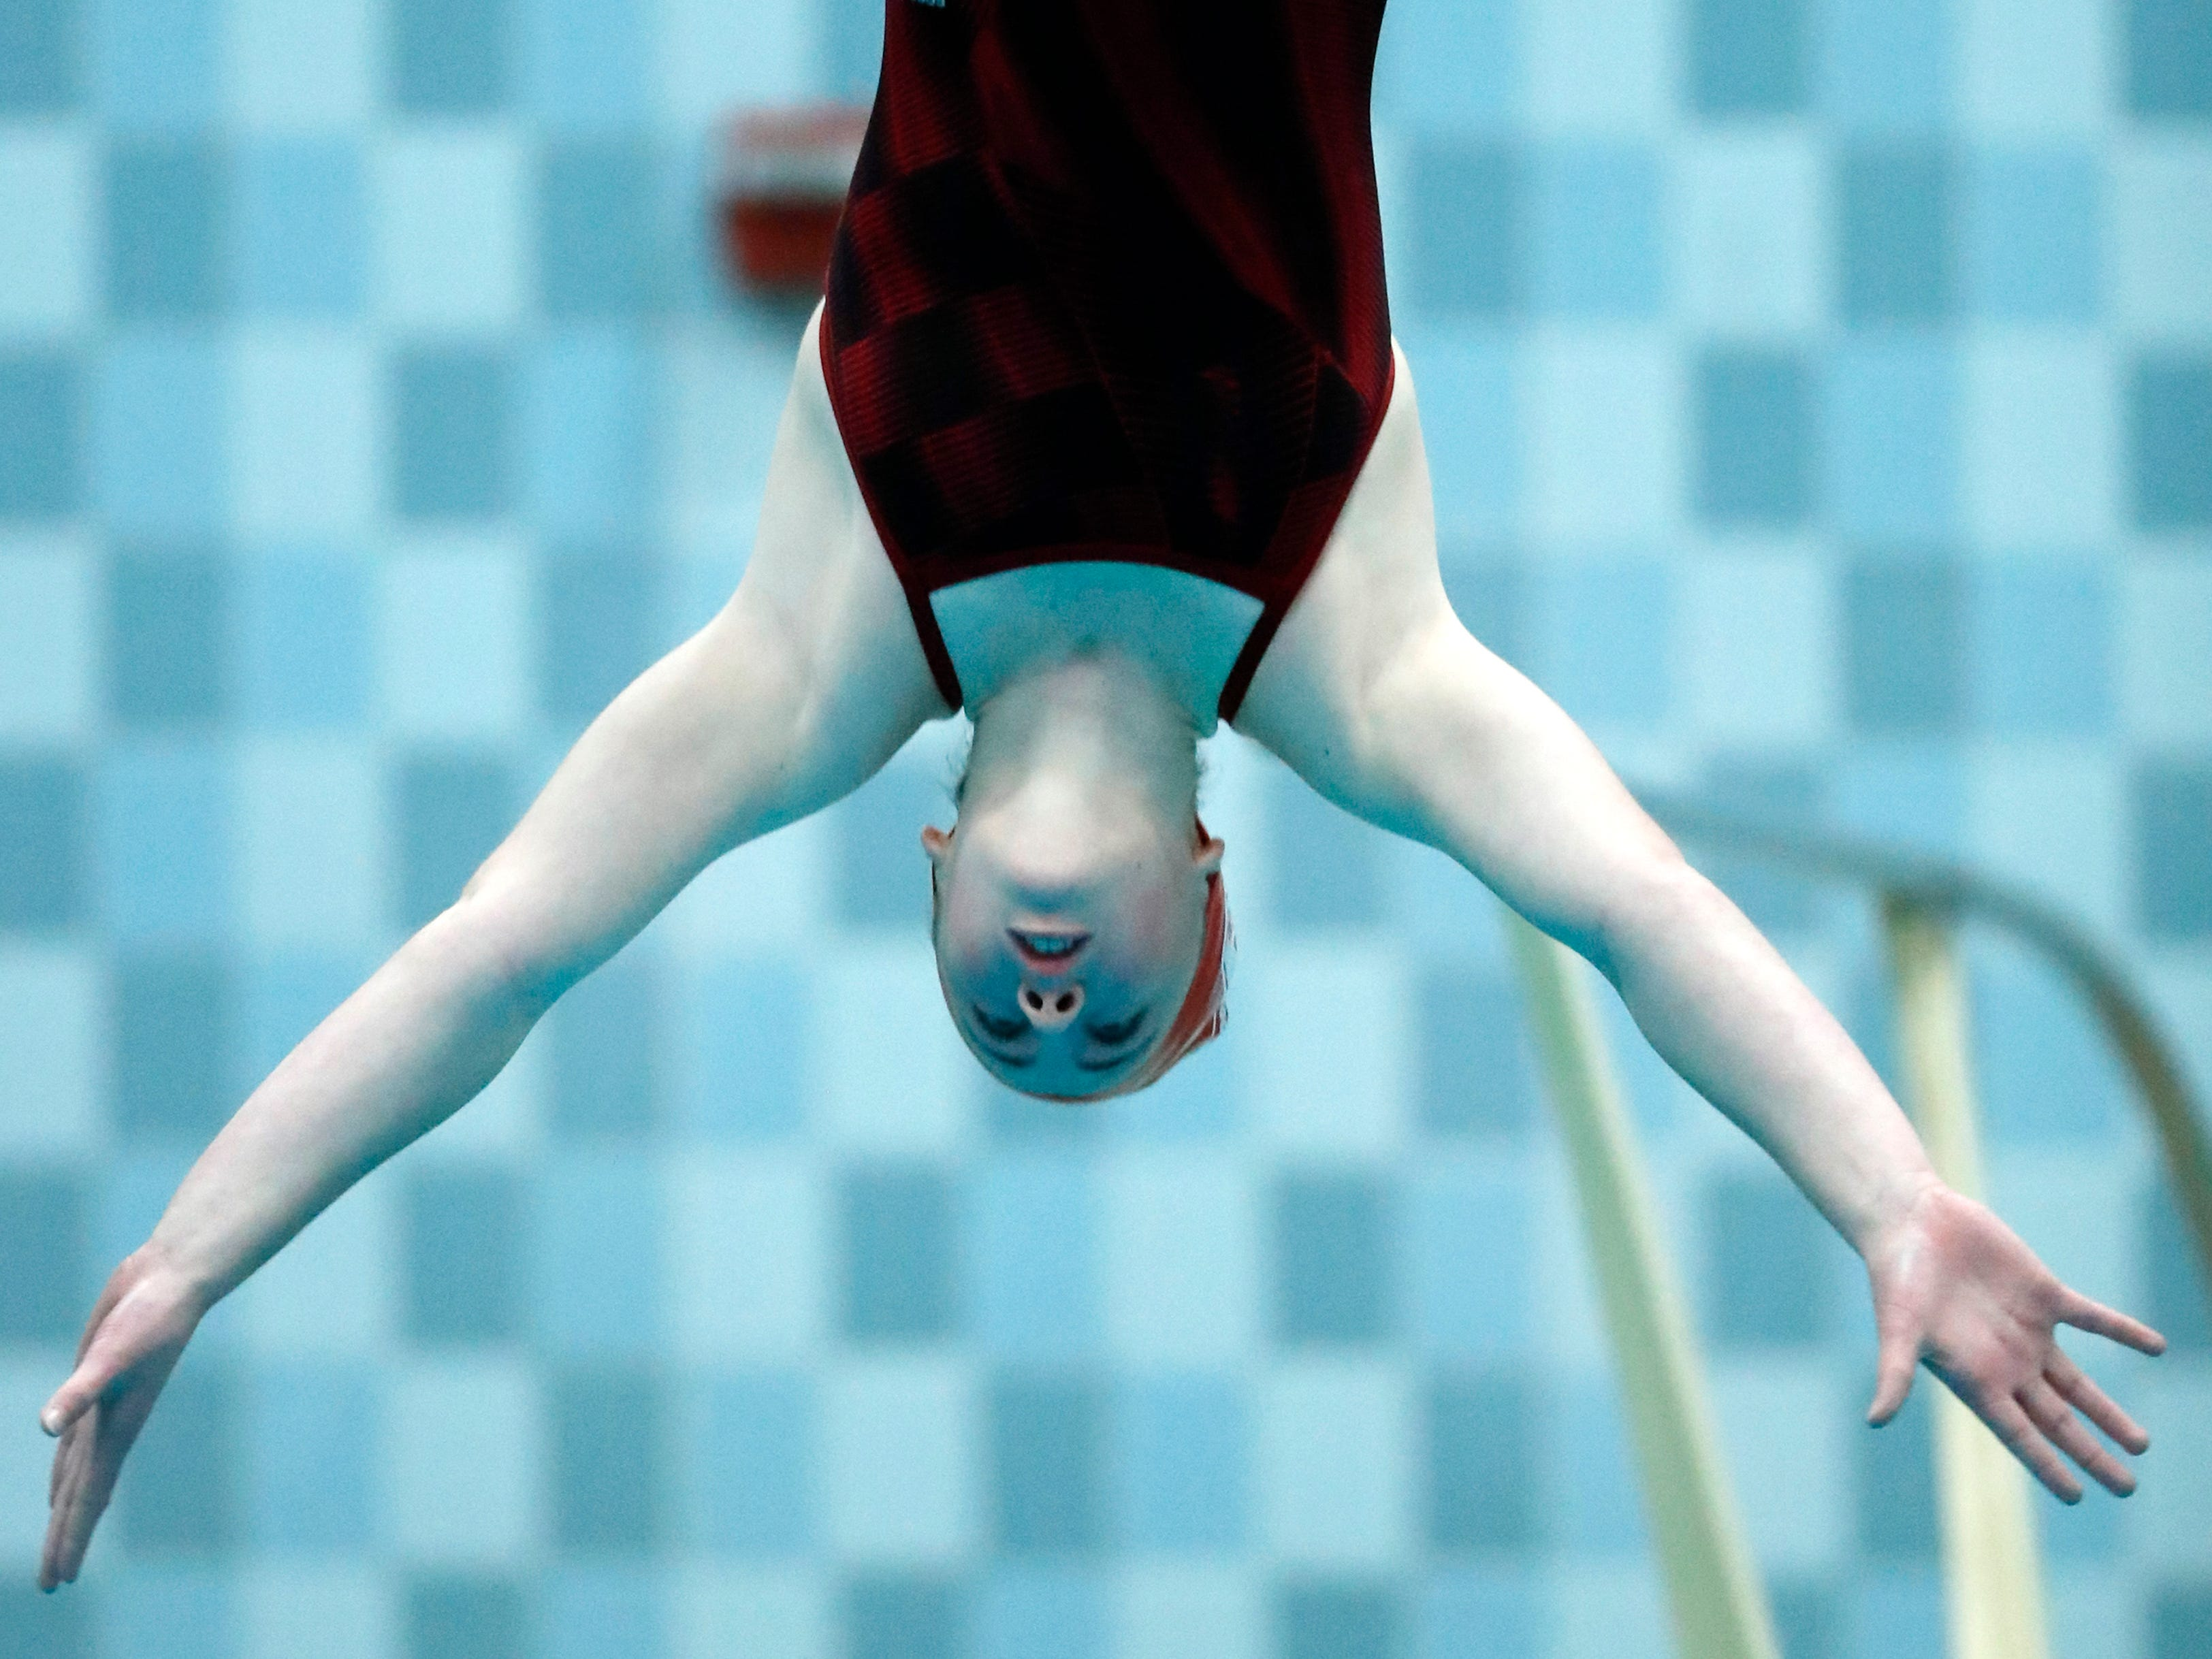 Neenah's Abbigale Priestley dives during the WIAA Division 1 State Swimming and Diving meet Saturday, Nov. 10, 2018, at the UW Natatorium in Madison, Wis.